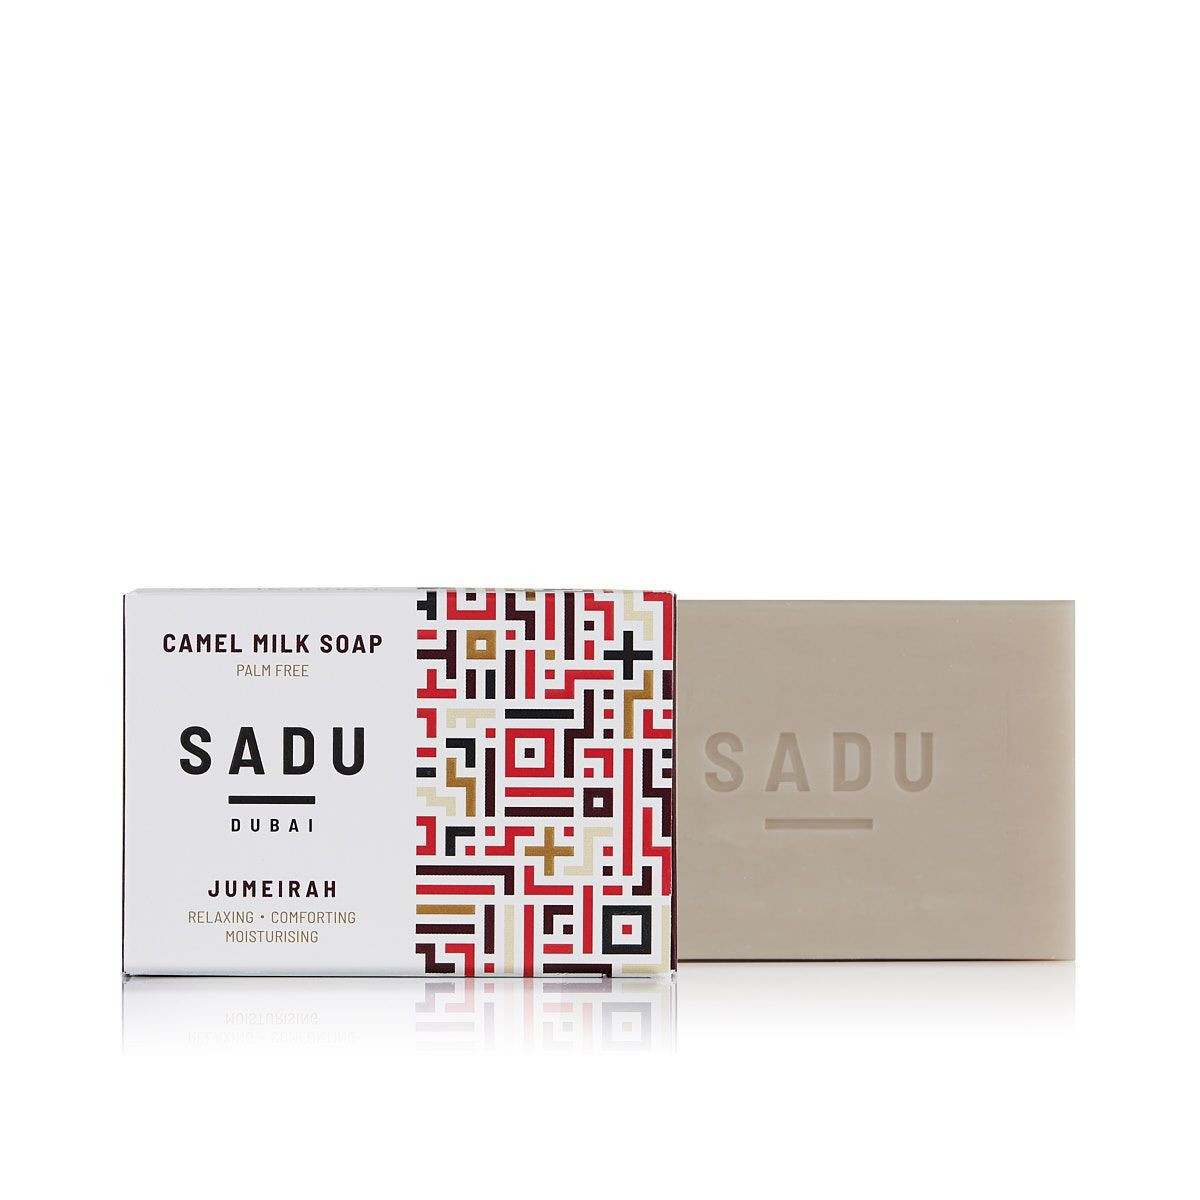 Camel milk soap Vanilla Wood - SADU collection